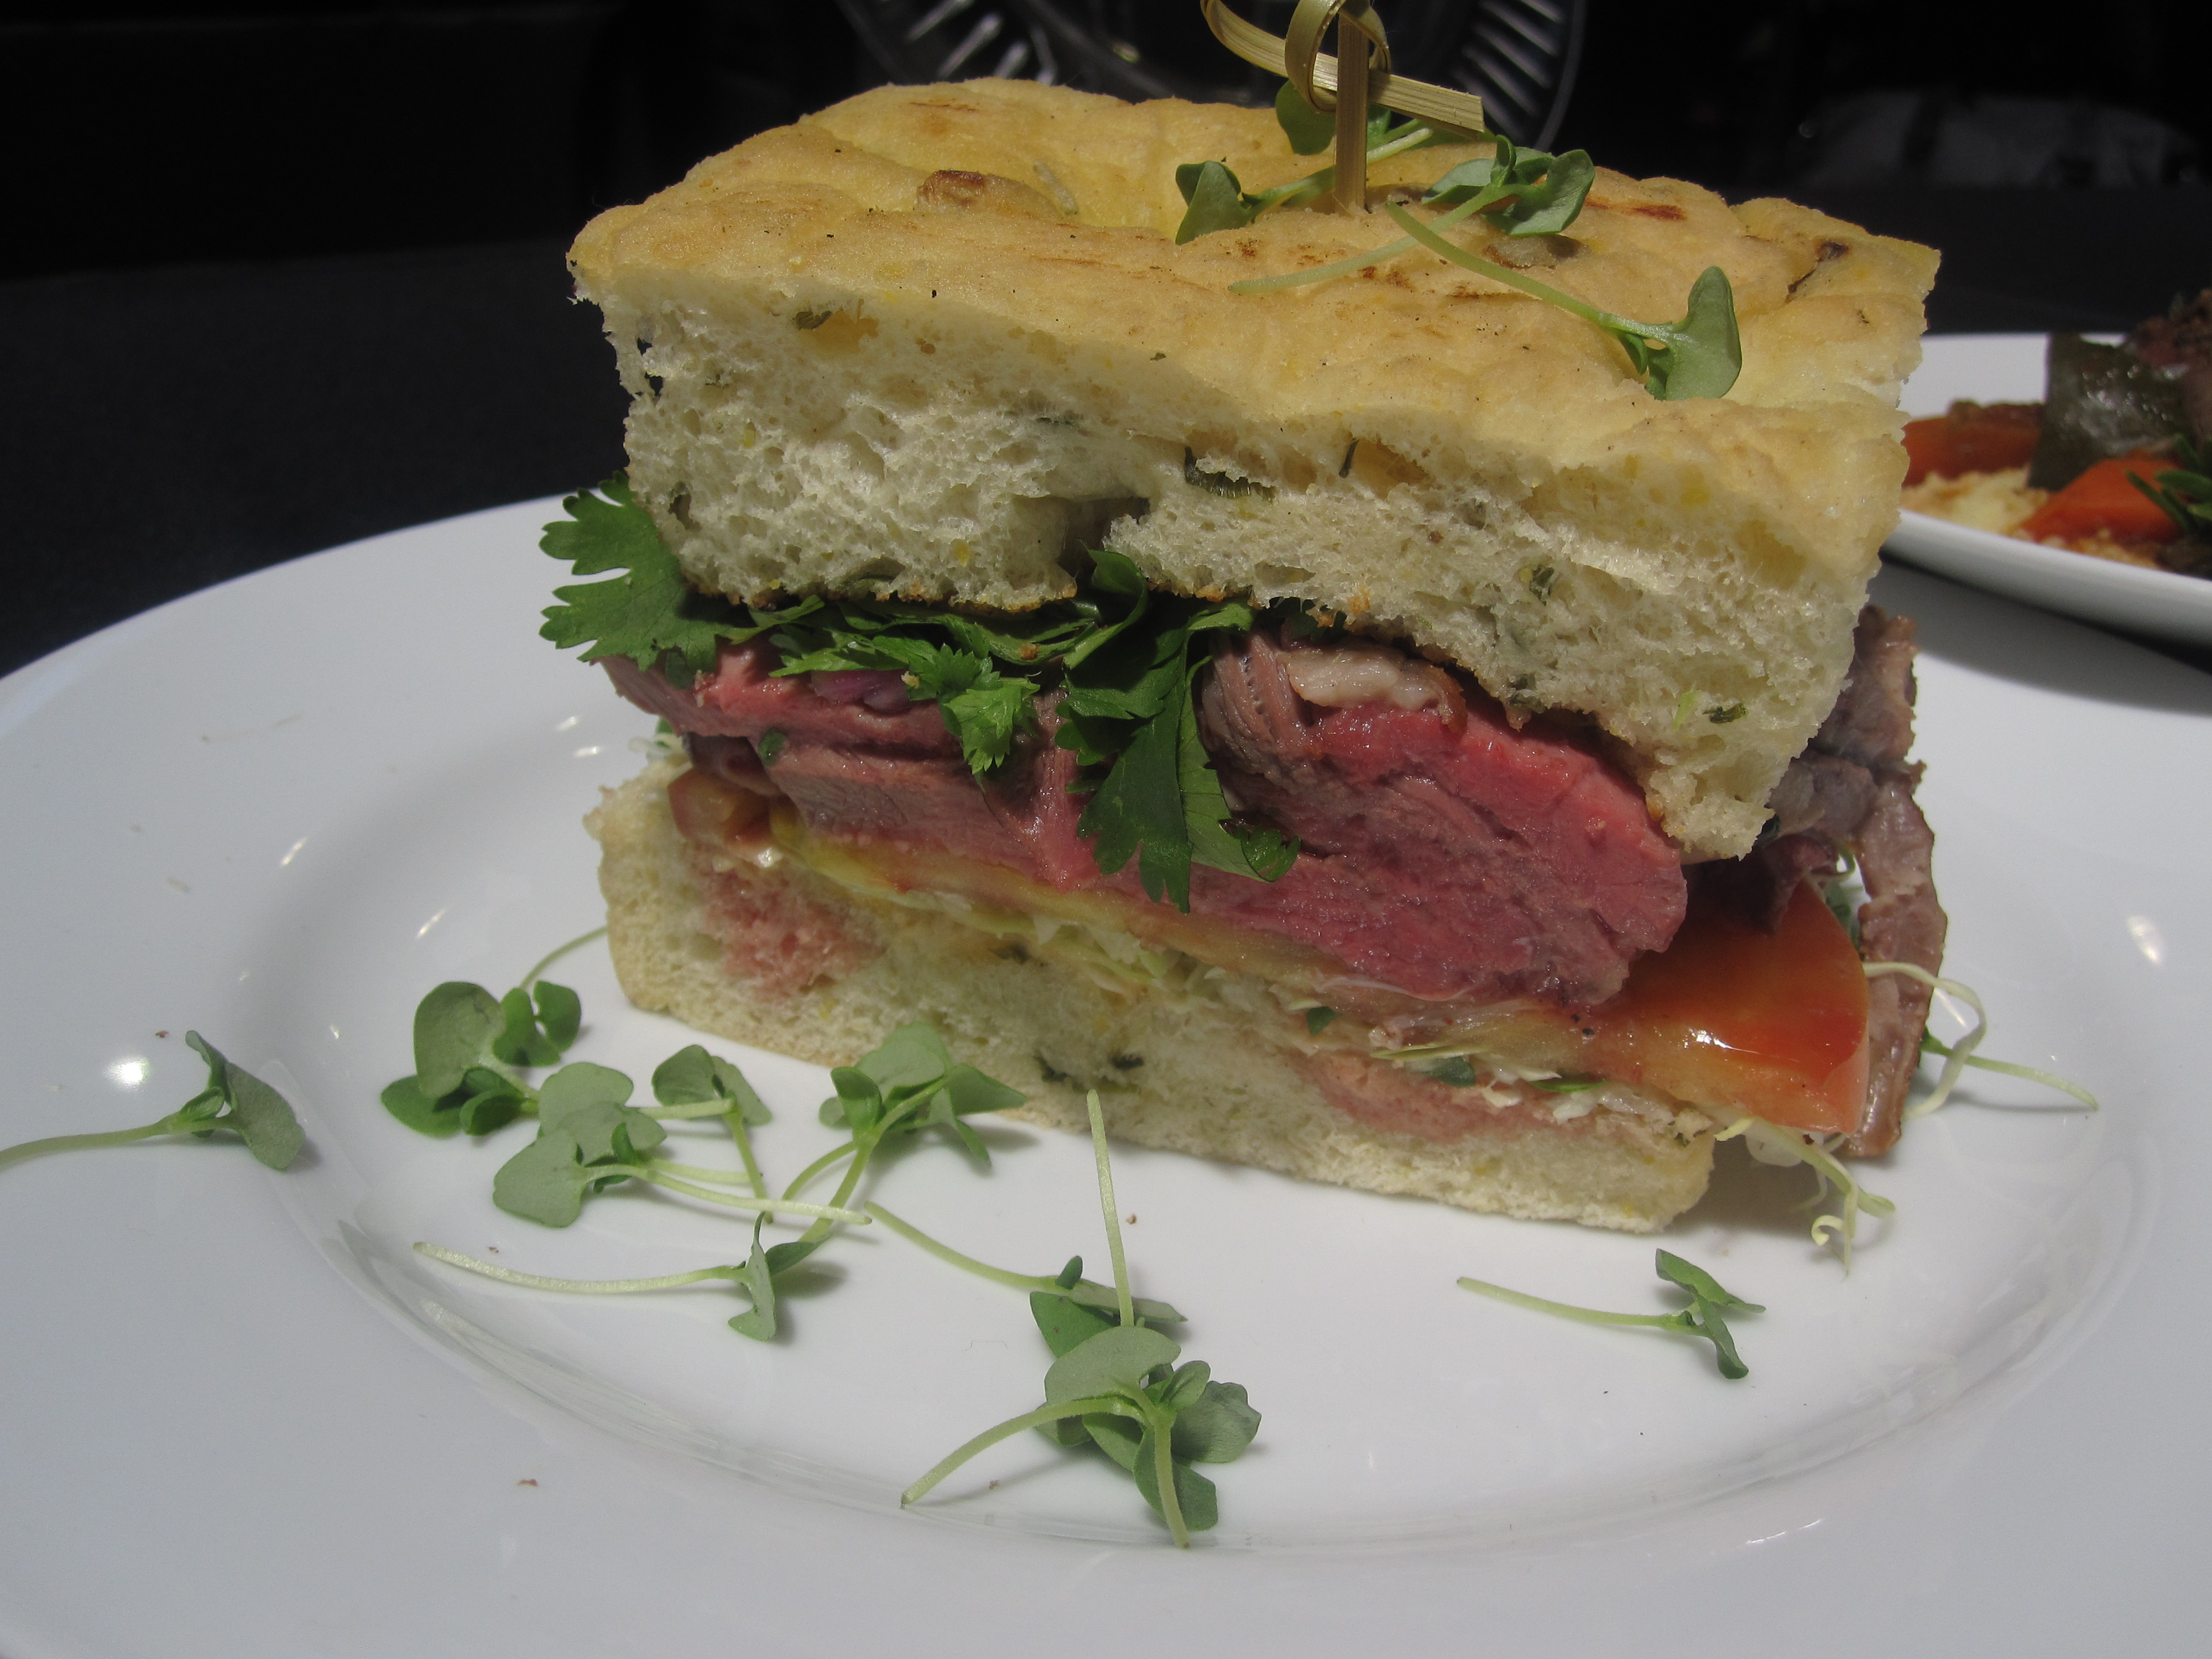 Although this red curry leg of lamb sandwich looks good, it was far too salty for my liking.